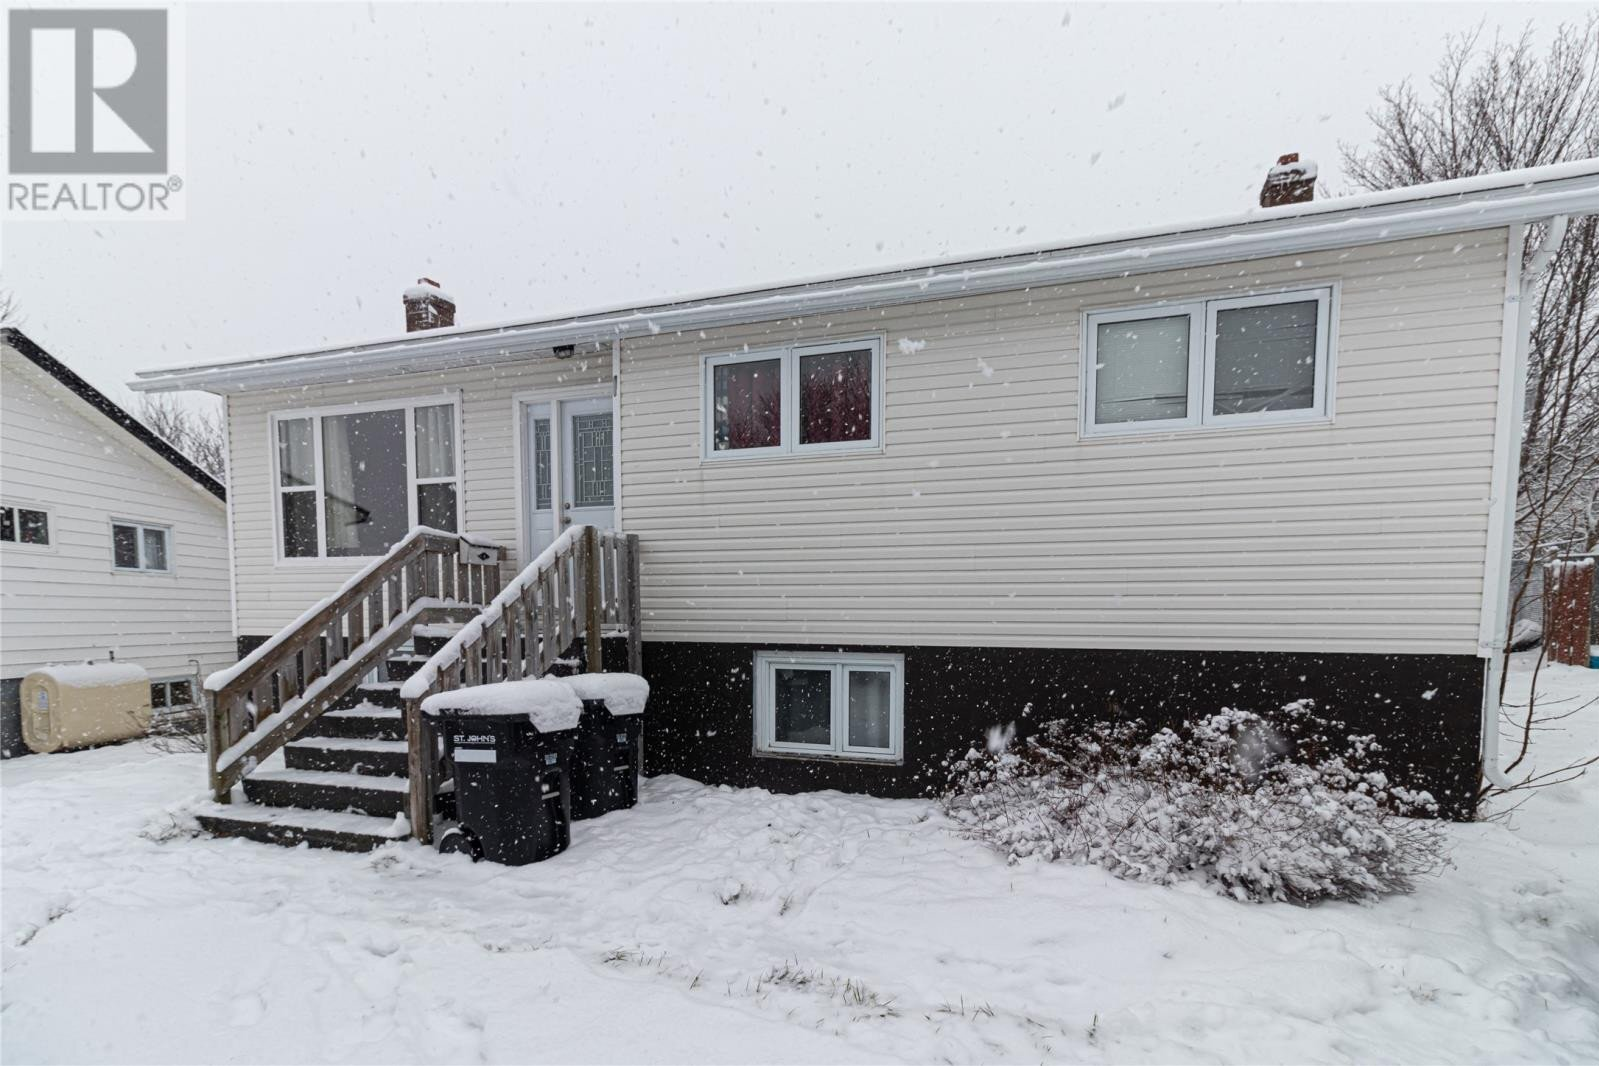 House for sale at 19 Pinsent Pl St. John's Newfoundland - MLS: 1224838